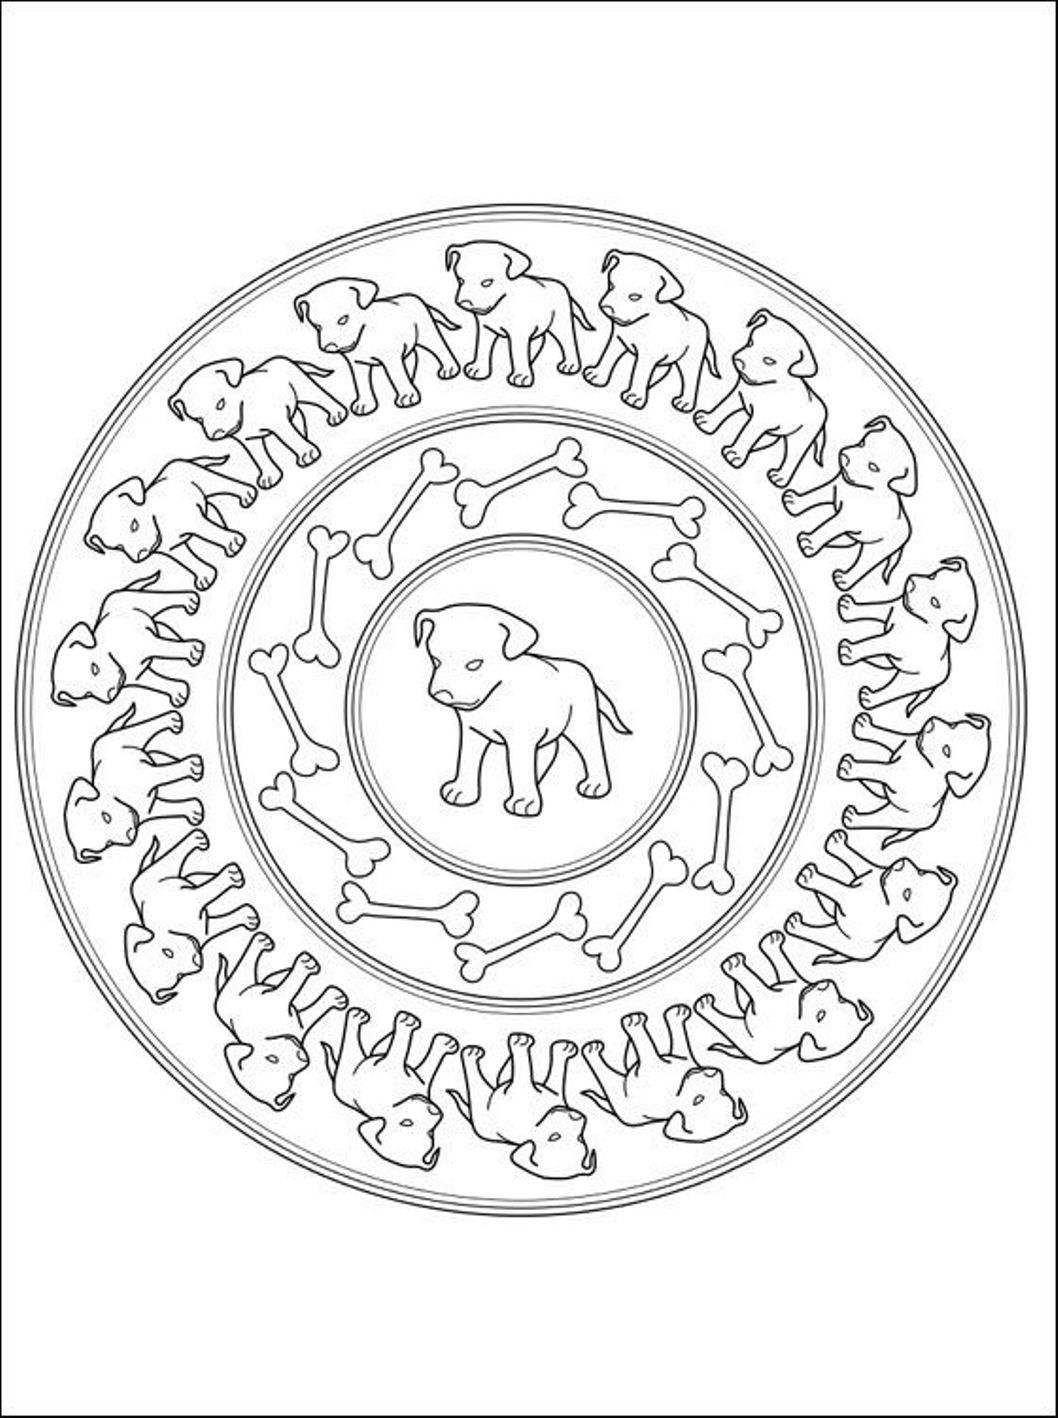 Puppies Mandala Coloring Pages | mandala color pages | Pinterest ...